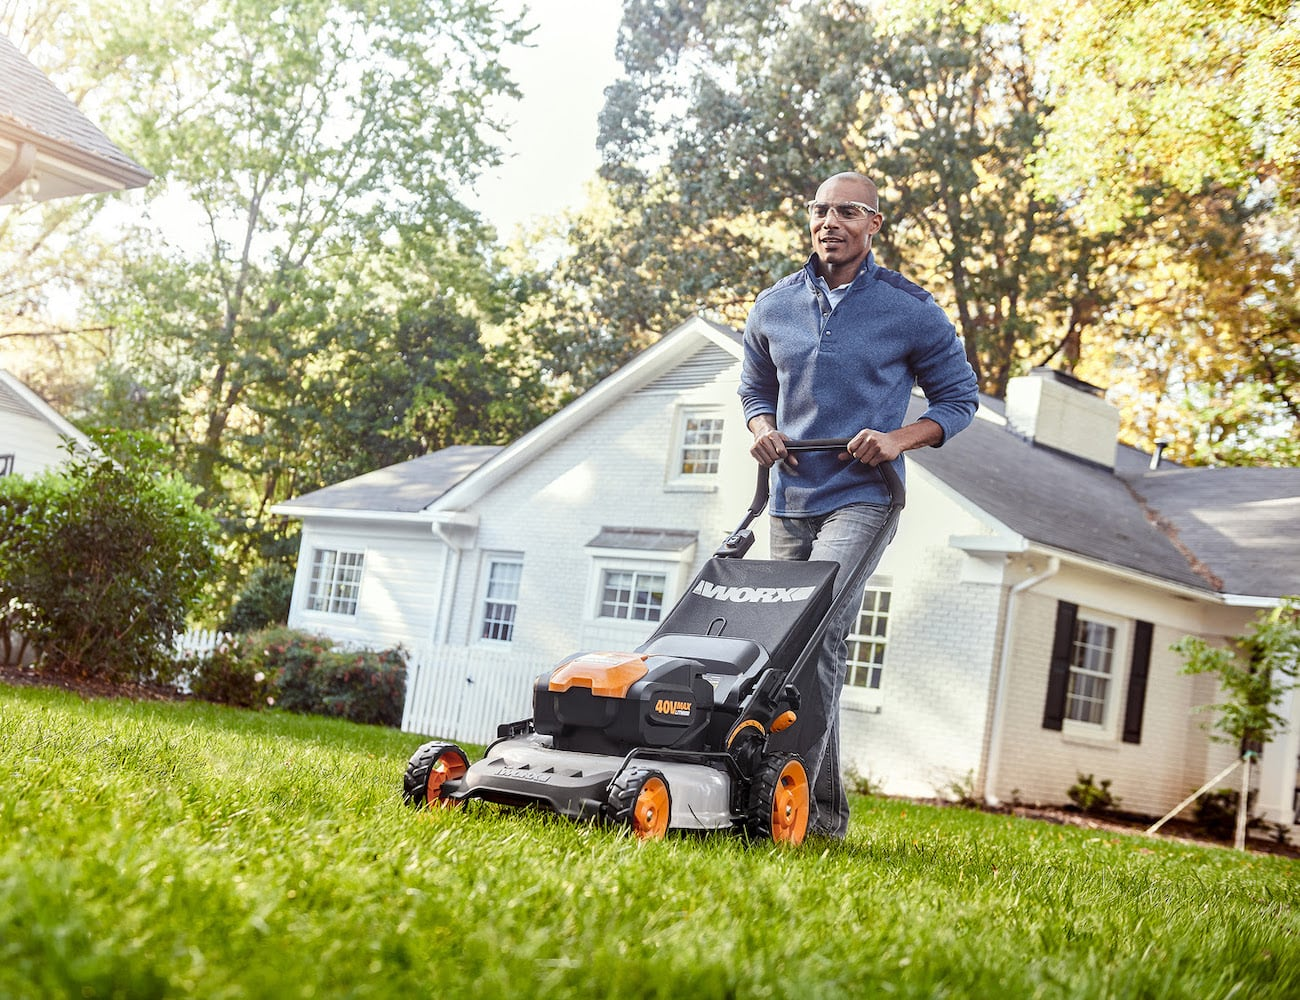 Worx 40V 20″ Mower Mulching Lawn Mower stores easily by completely collapsing